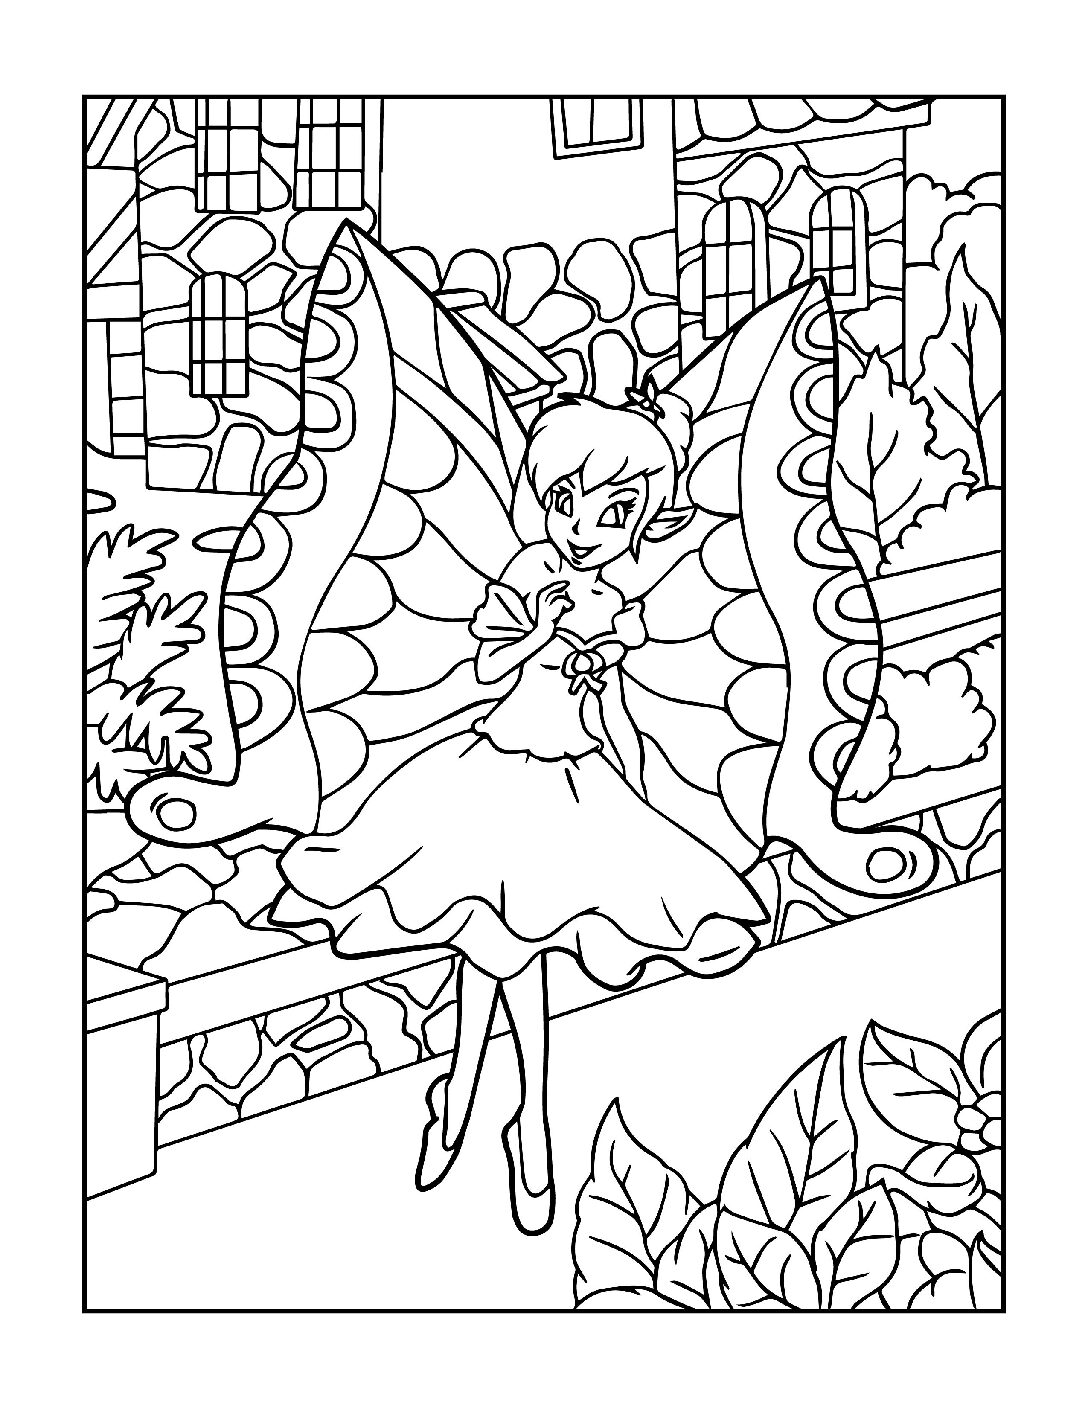 Coloring-Pages-Fairies-6-01-pdf Free Printable Fairy Colouring Pages